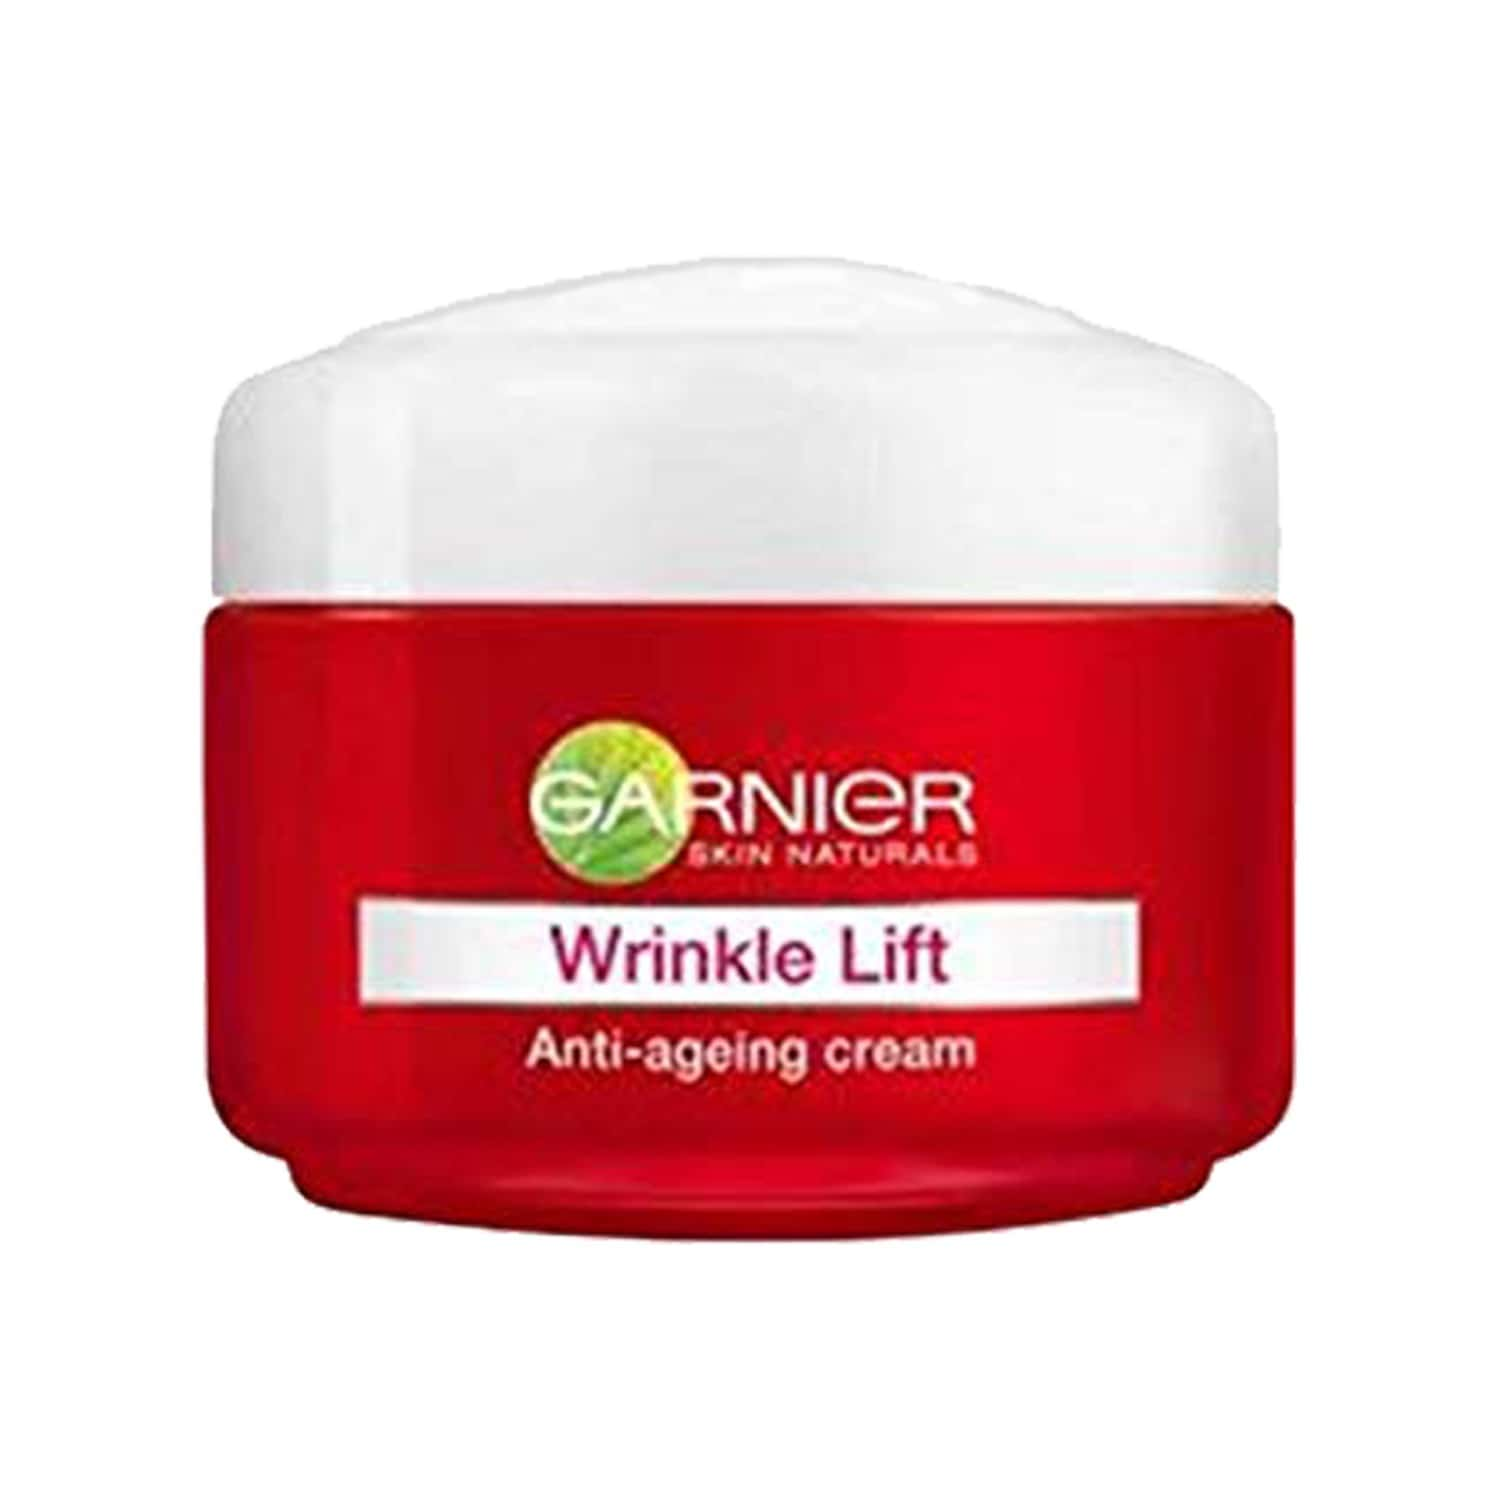 Garnier Skin Naturals Wrinkle Lift Anti-ageing Cream 40 Gm